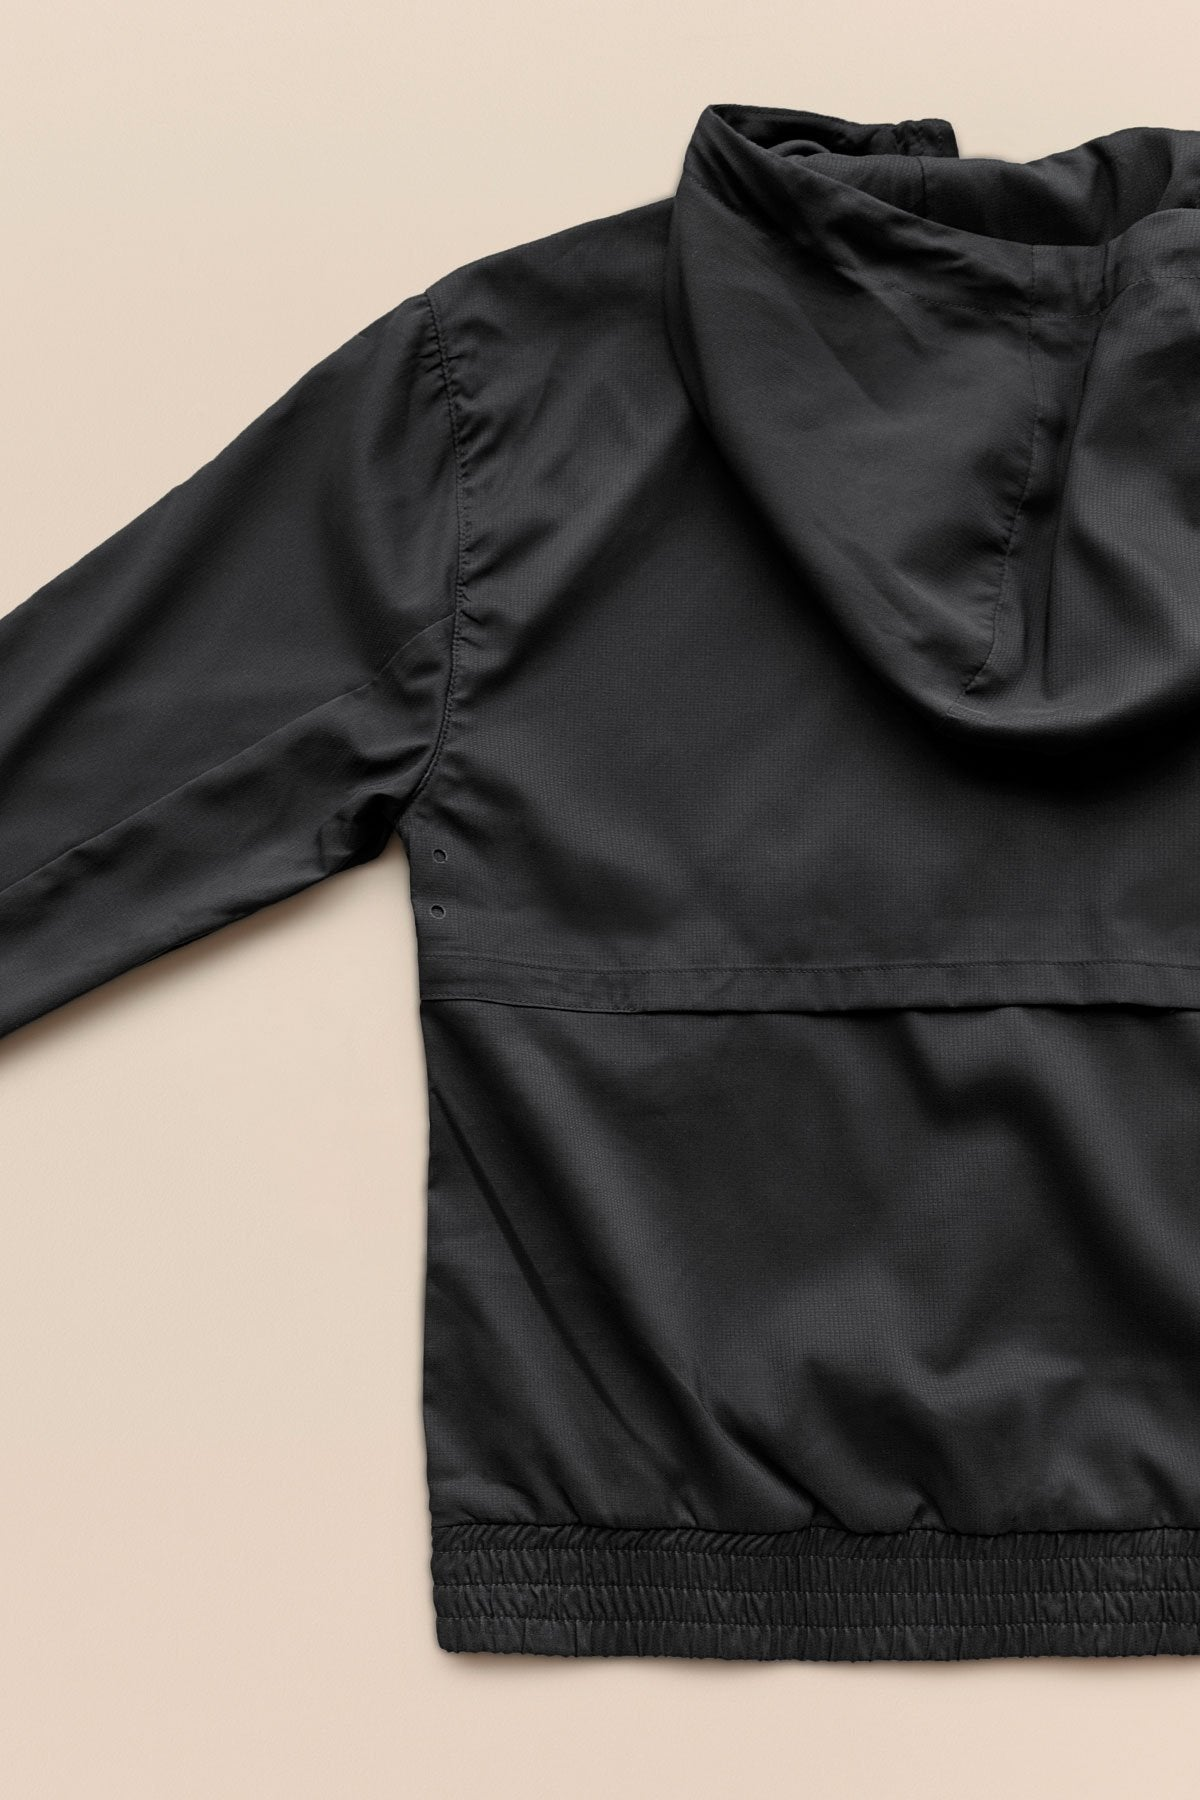 Black Summit Track Jacket